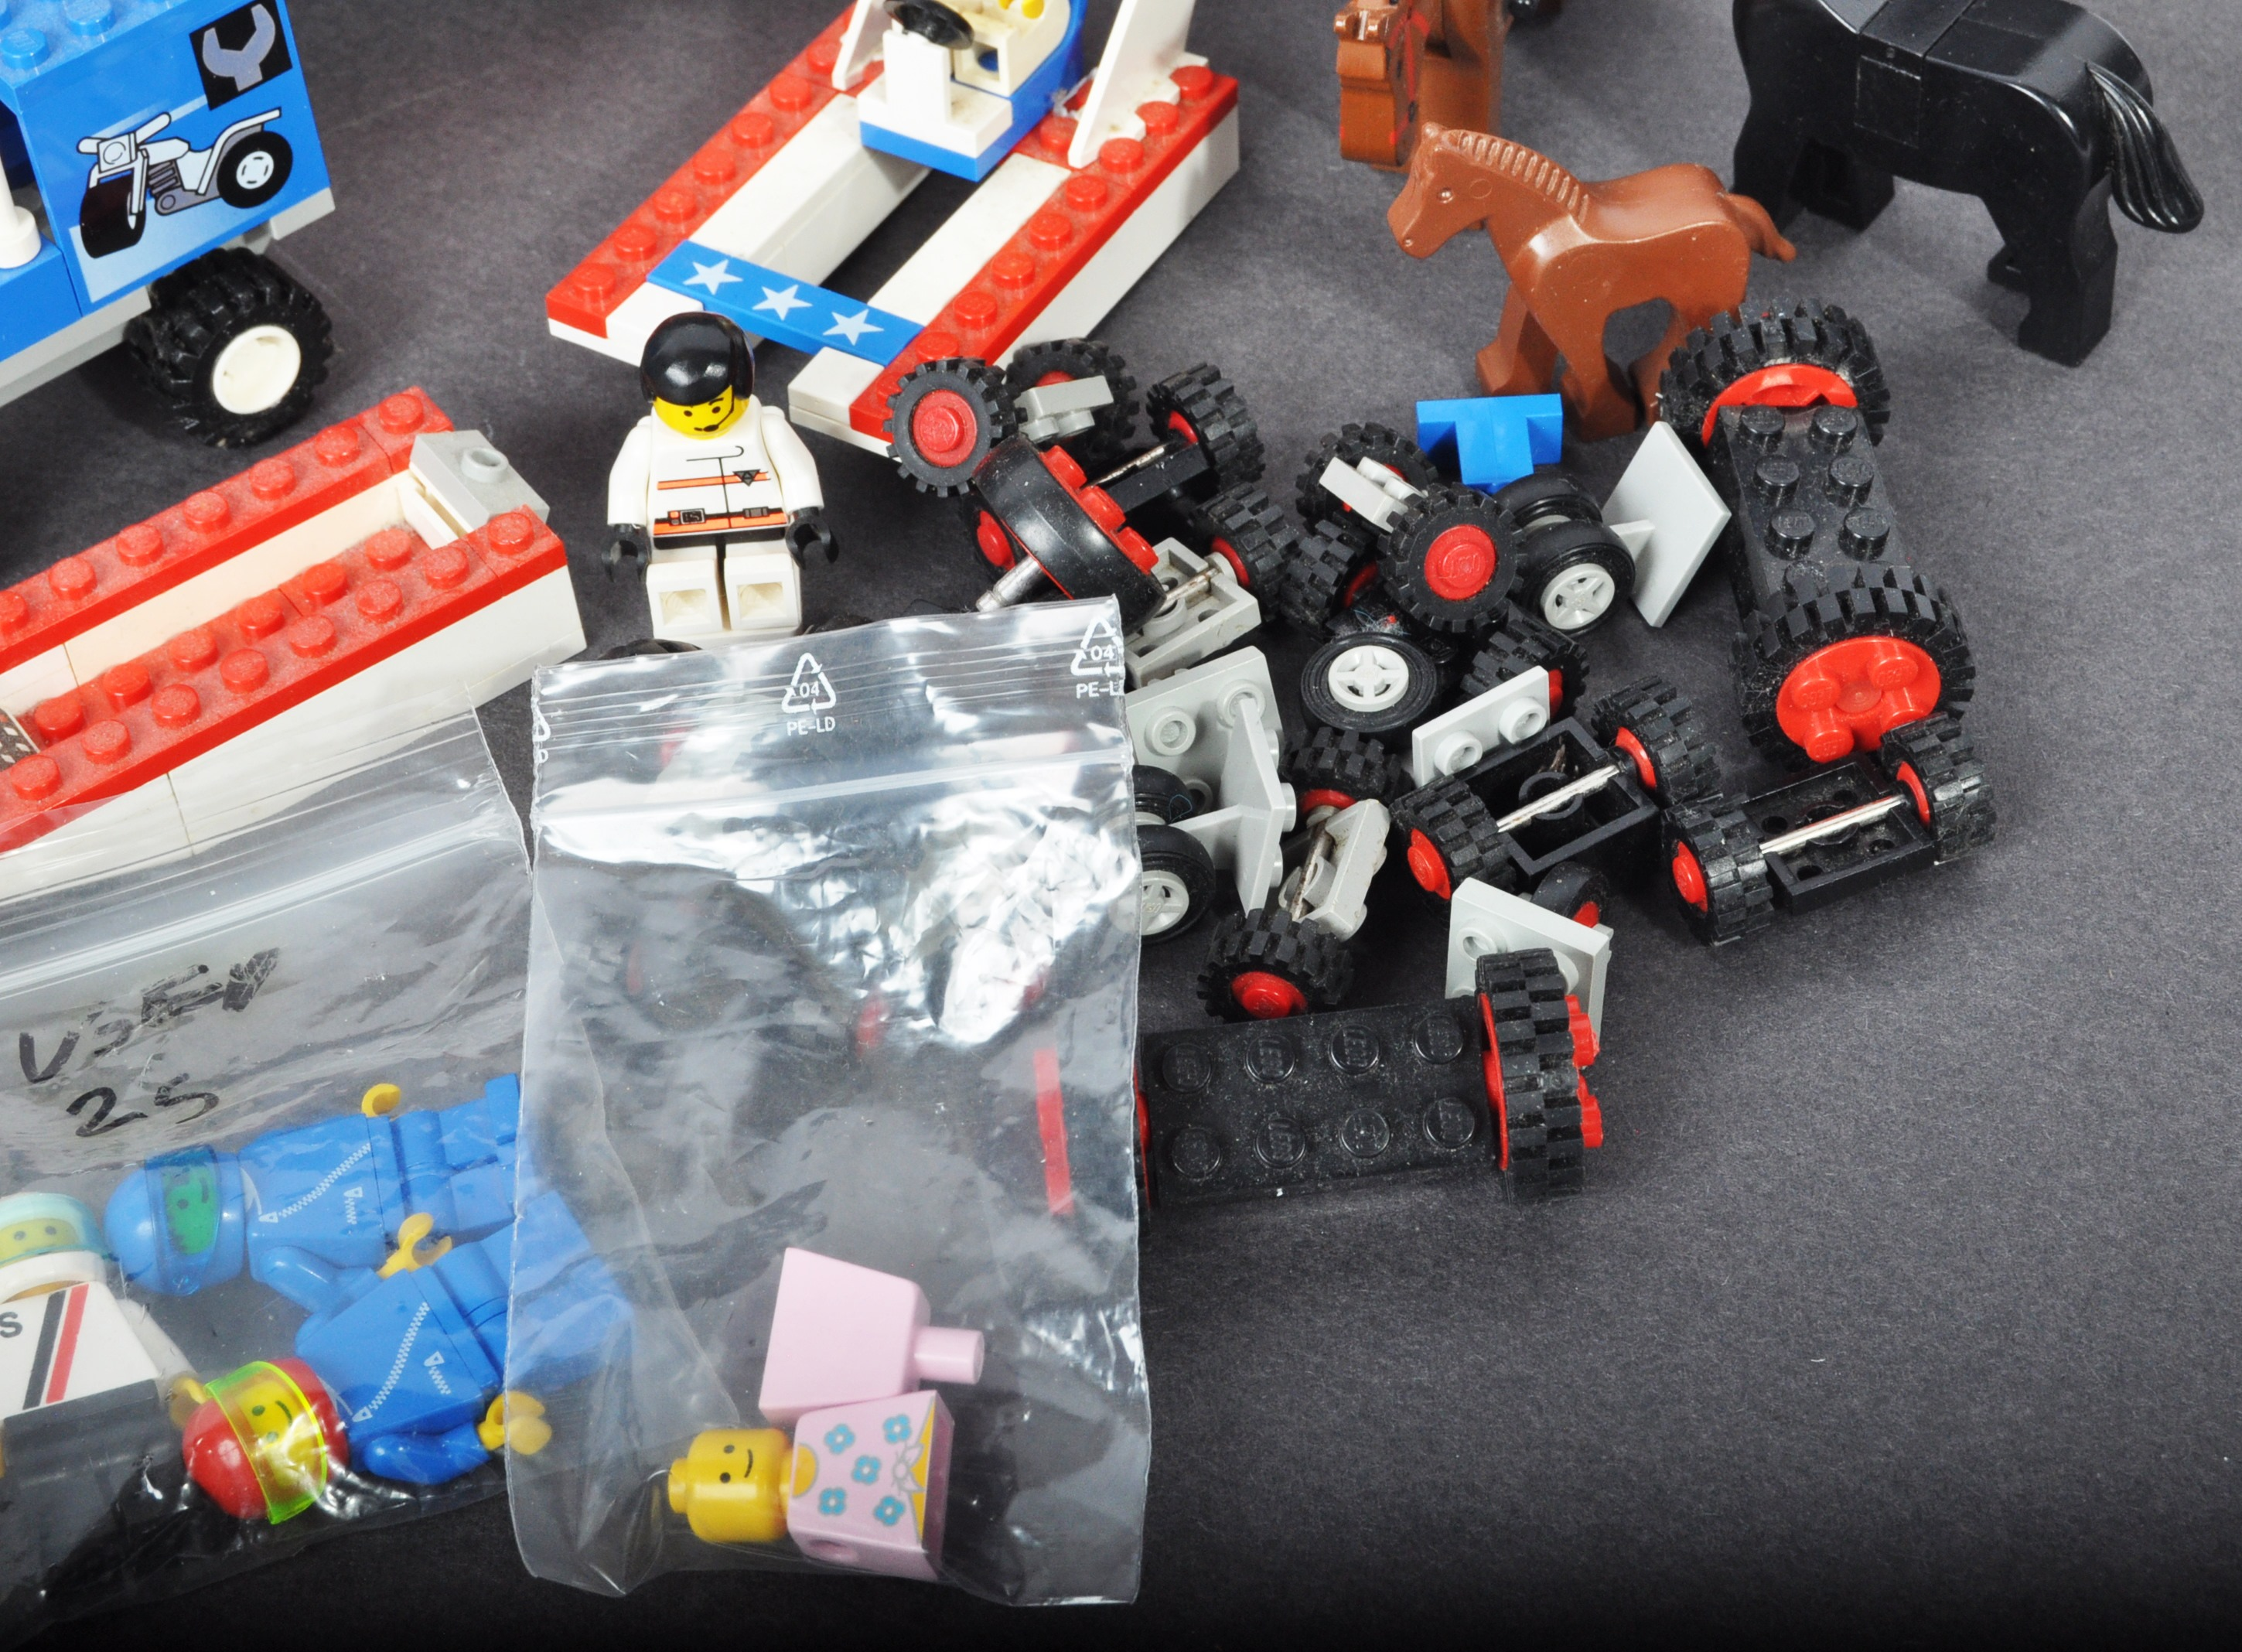 COLLECTION OF ASSORTED VINTAGE MINI LEGO SETS & MINIFIGURES - Image 7 of 10